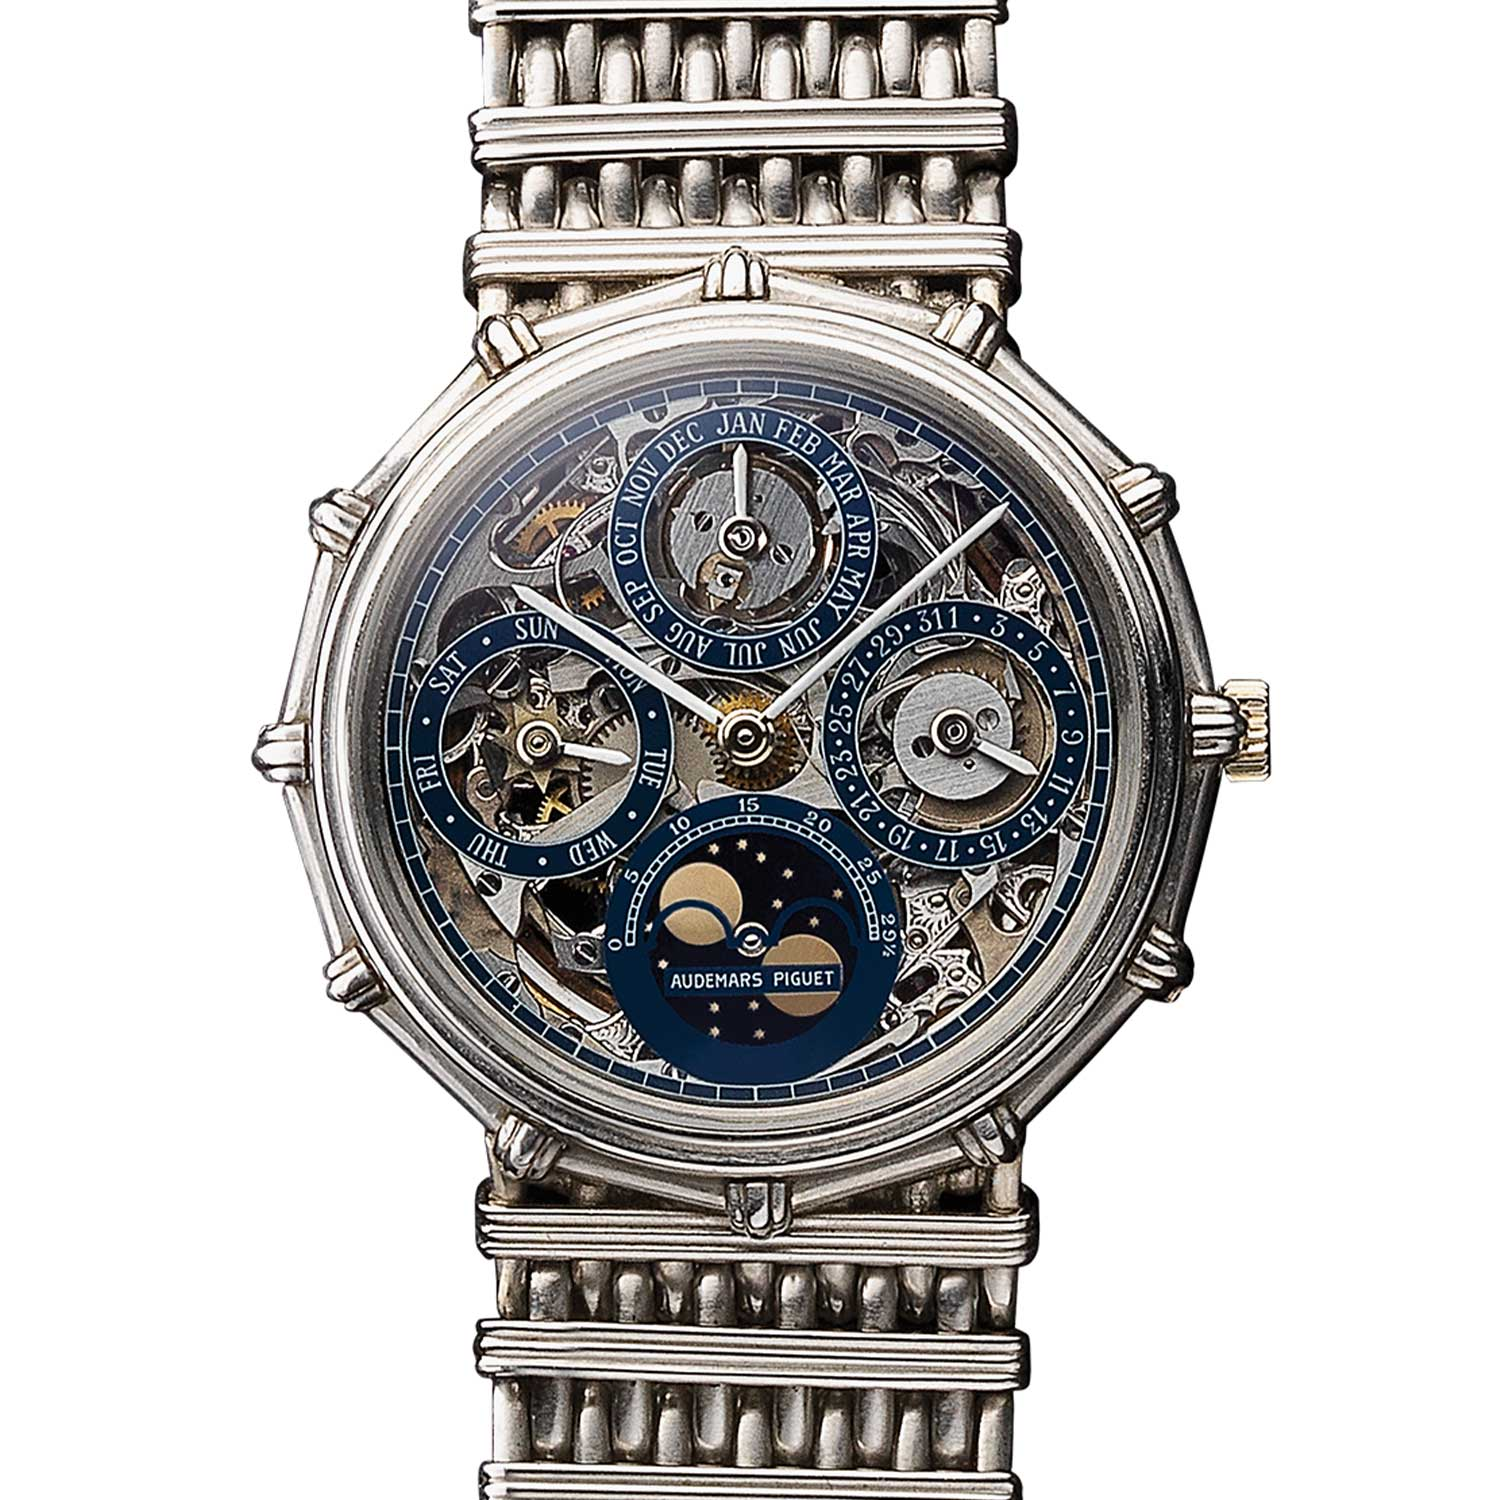 12-sided openworked perpetual calendar. Model 5564PT (16 examples, of which 14 in platinum). Movement No 227069, case No C12134. Calibre 2120/2800. Movement made in 1983, watch sold in 1985. Audemars Piguet Heritage Collection, Inv. 1130.